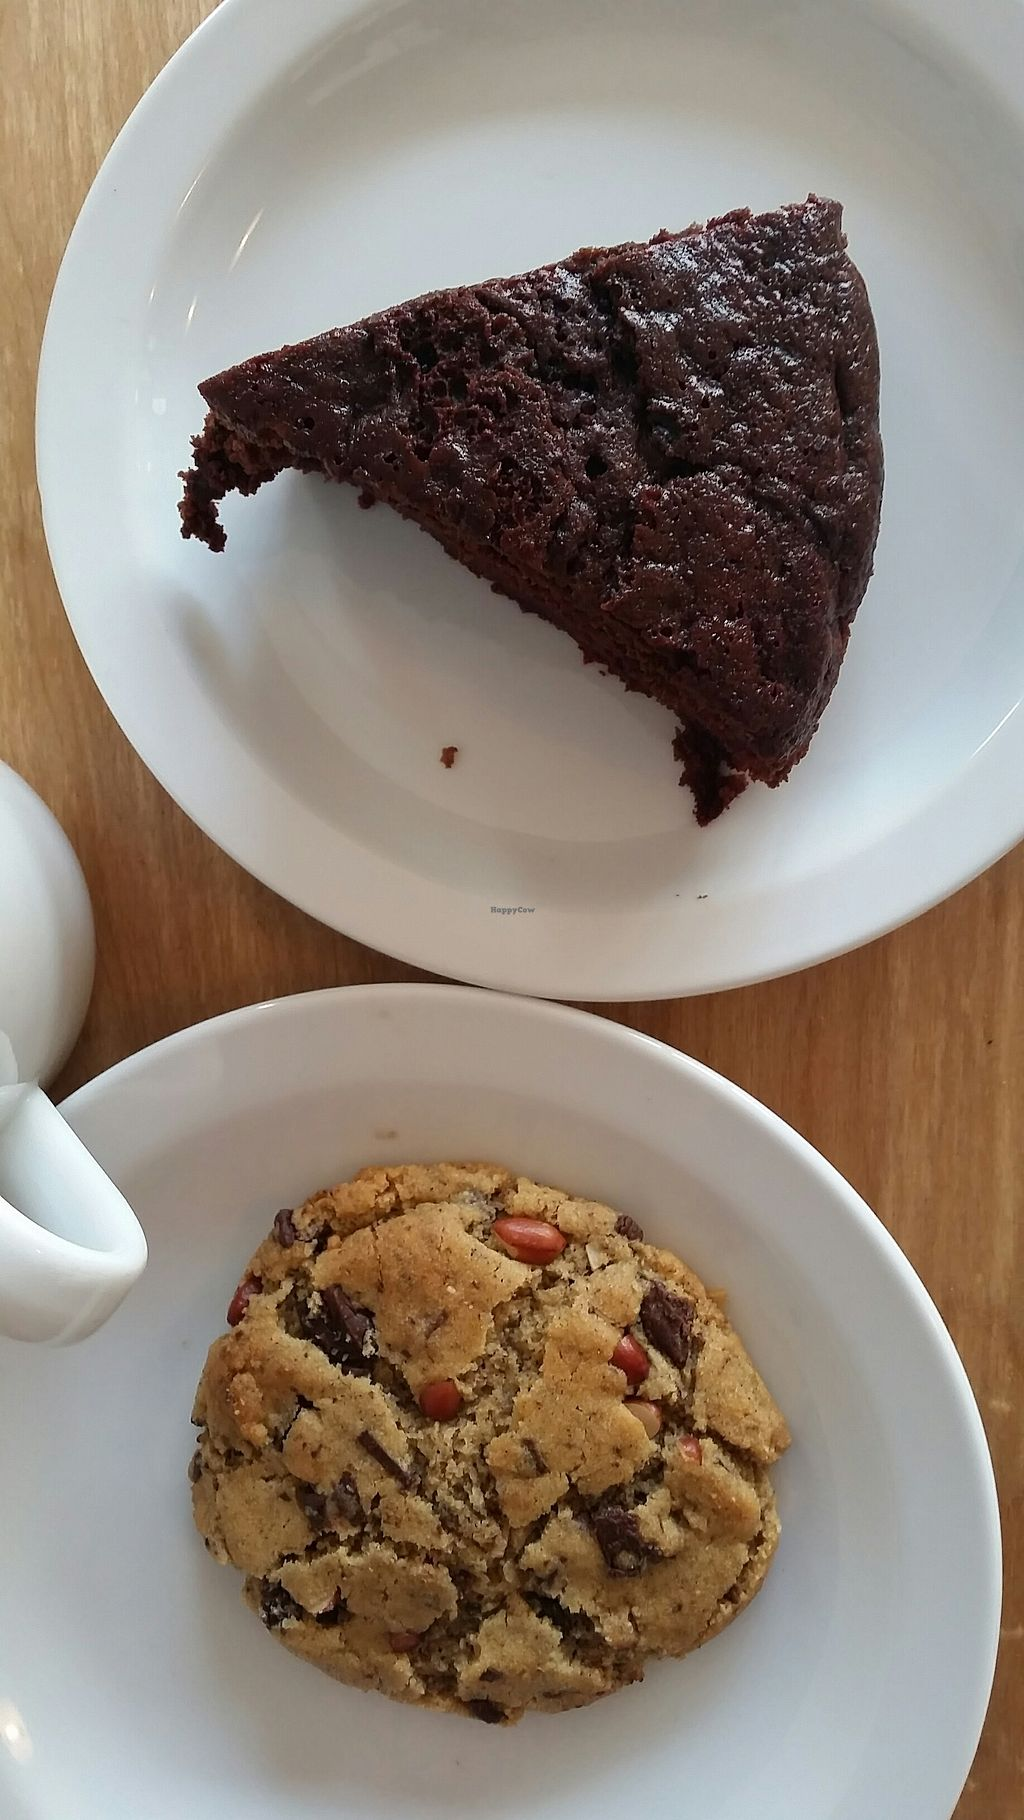 """Photo of Herbivore  by <a href=""""/members/profile/konlish"""">konlish</a> <br/>Rose/chocolate cake and peanut peanut butter chocolate chip cookie  <br/> September 17, 2017  - <a href='/contact/abuse/image/93920/305485'>Report</a>"""